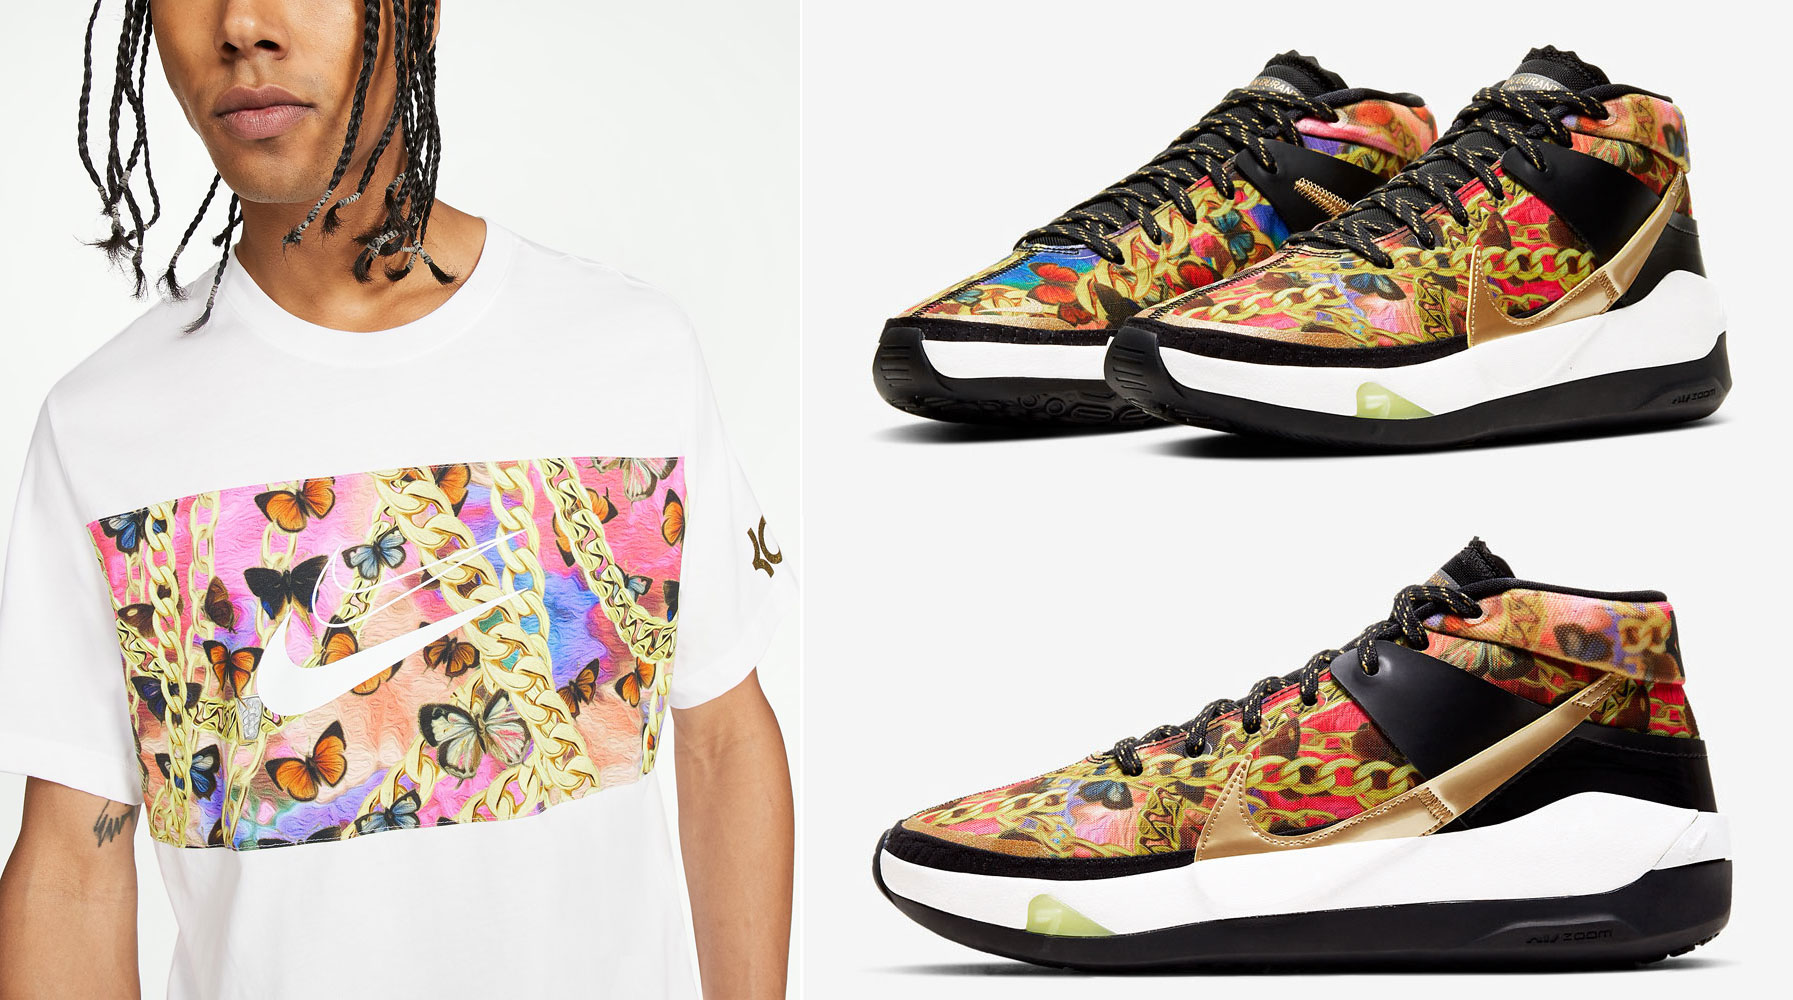 nike-kd-13-hype-butterflies-and-chains-shirt